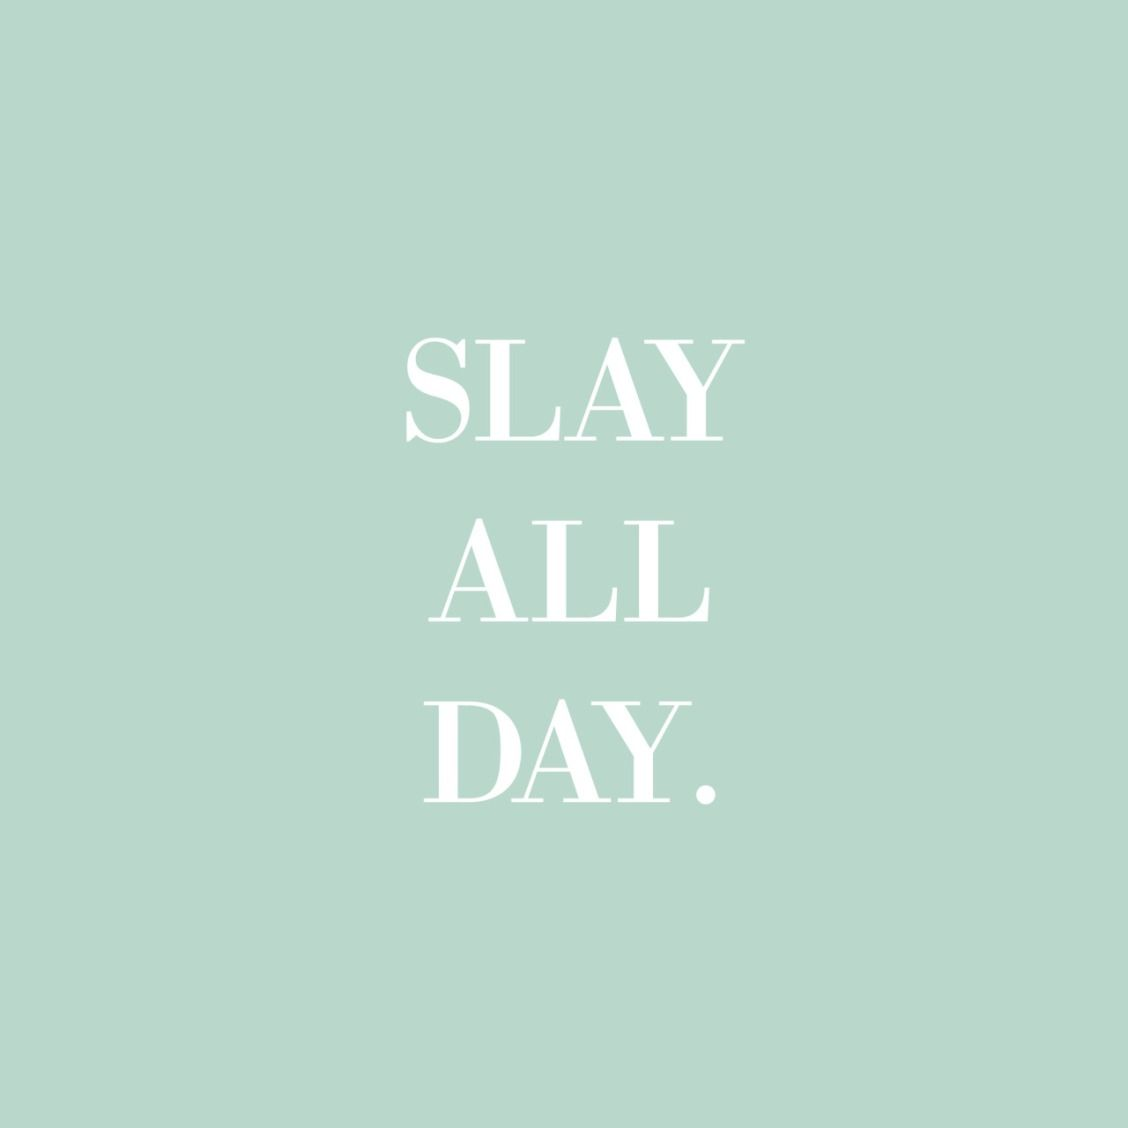 slay wallpaper in words - photo #8